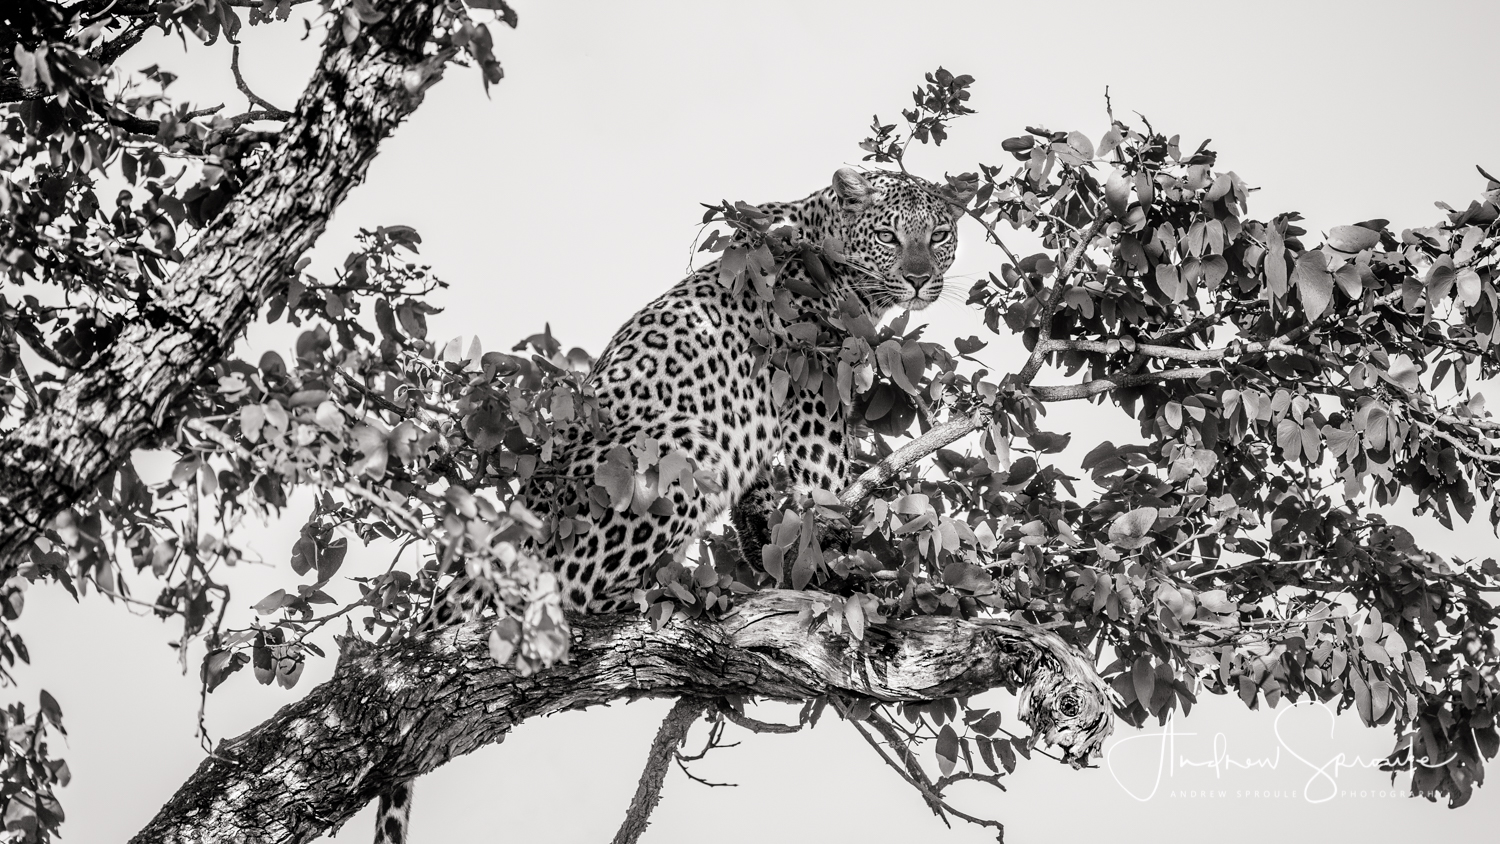 Andrew Sproule | Adventure & Wildlife Photographer | Leopard | Moremi Game Reserve, Okavango Delta, Botswana, Africa | Eternal Collection | Photo © Andrew Sproule